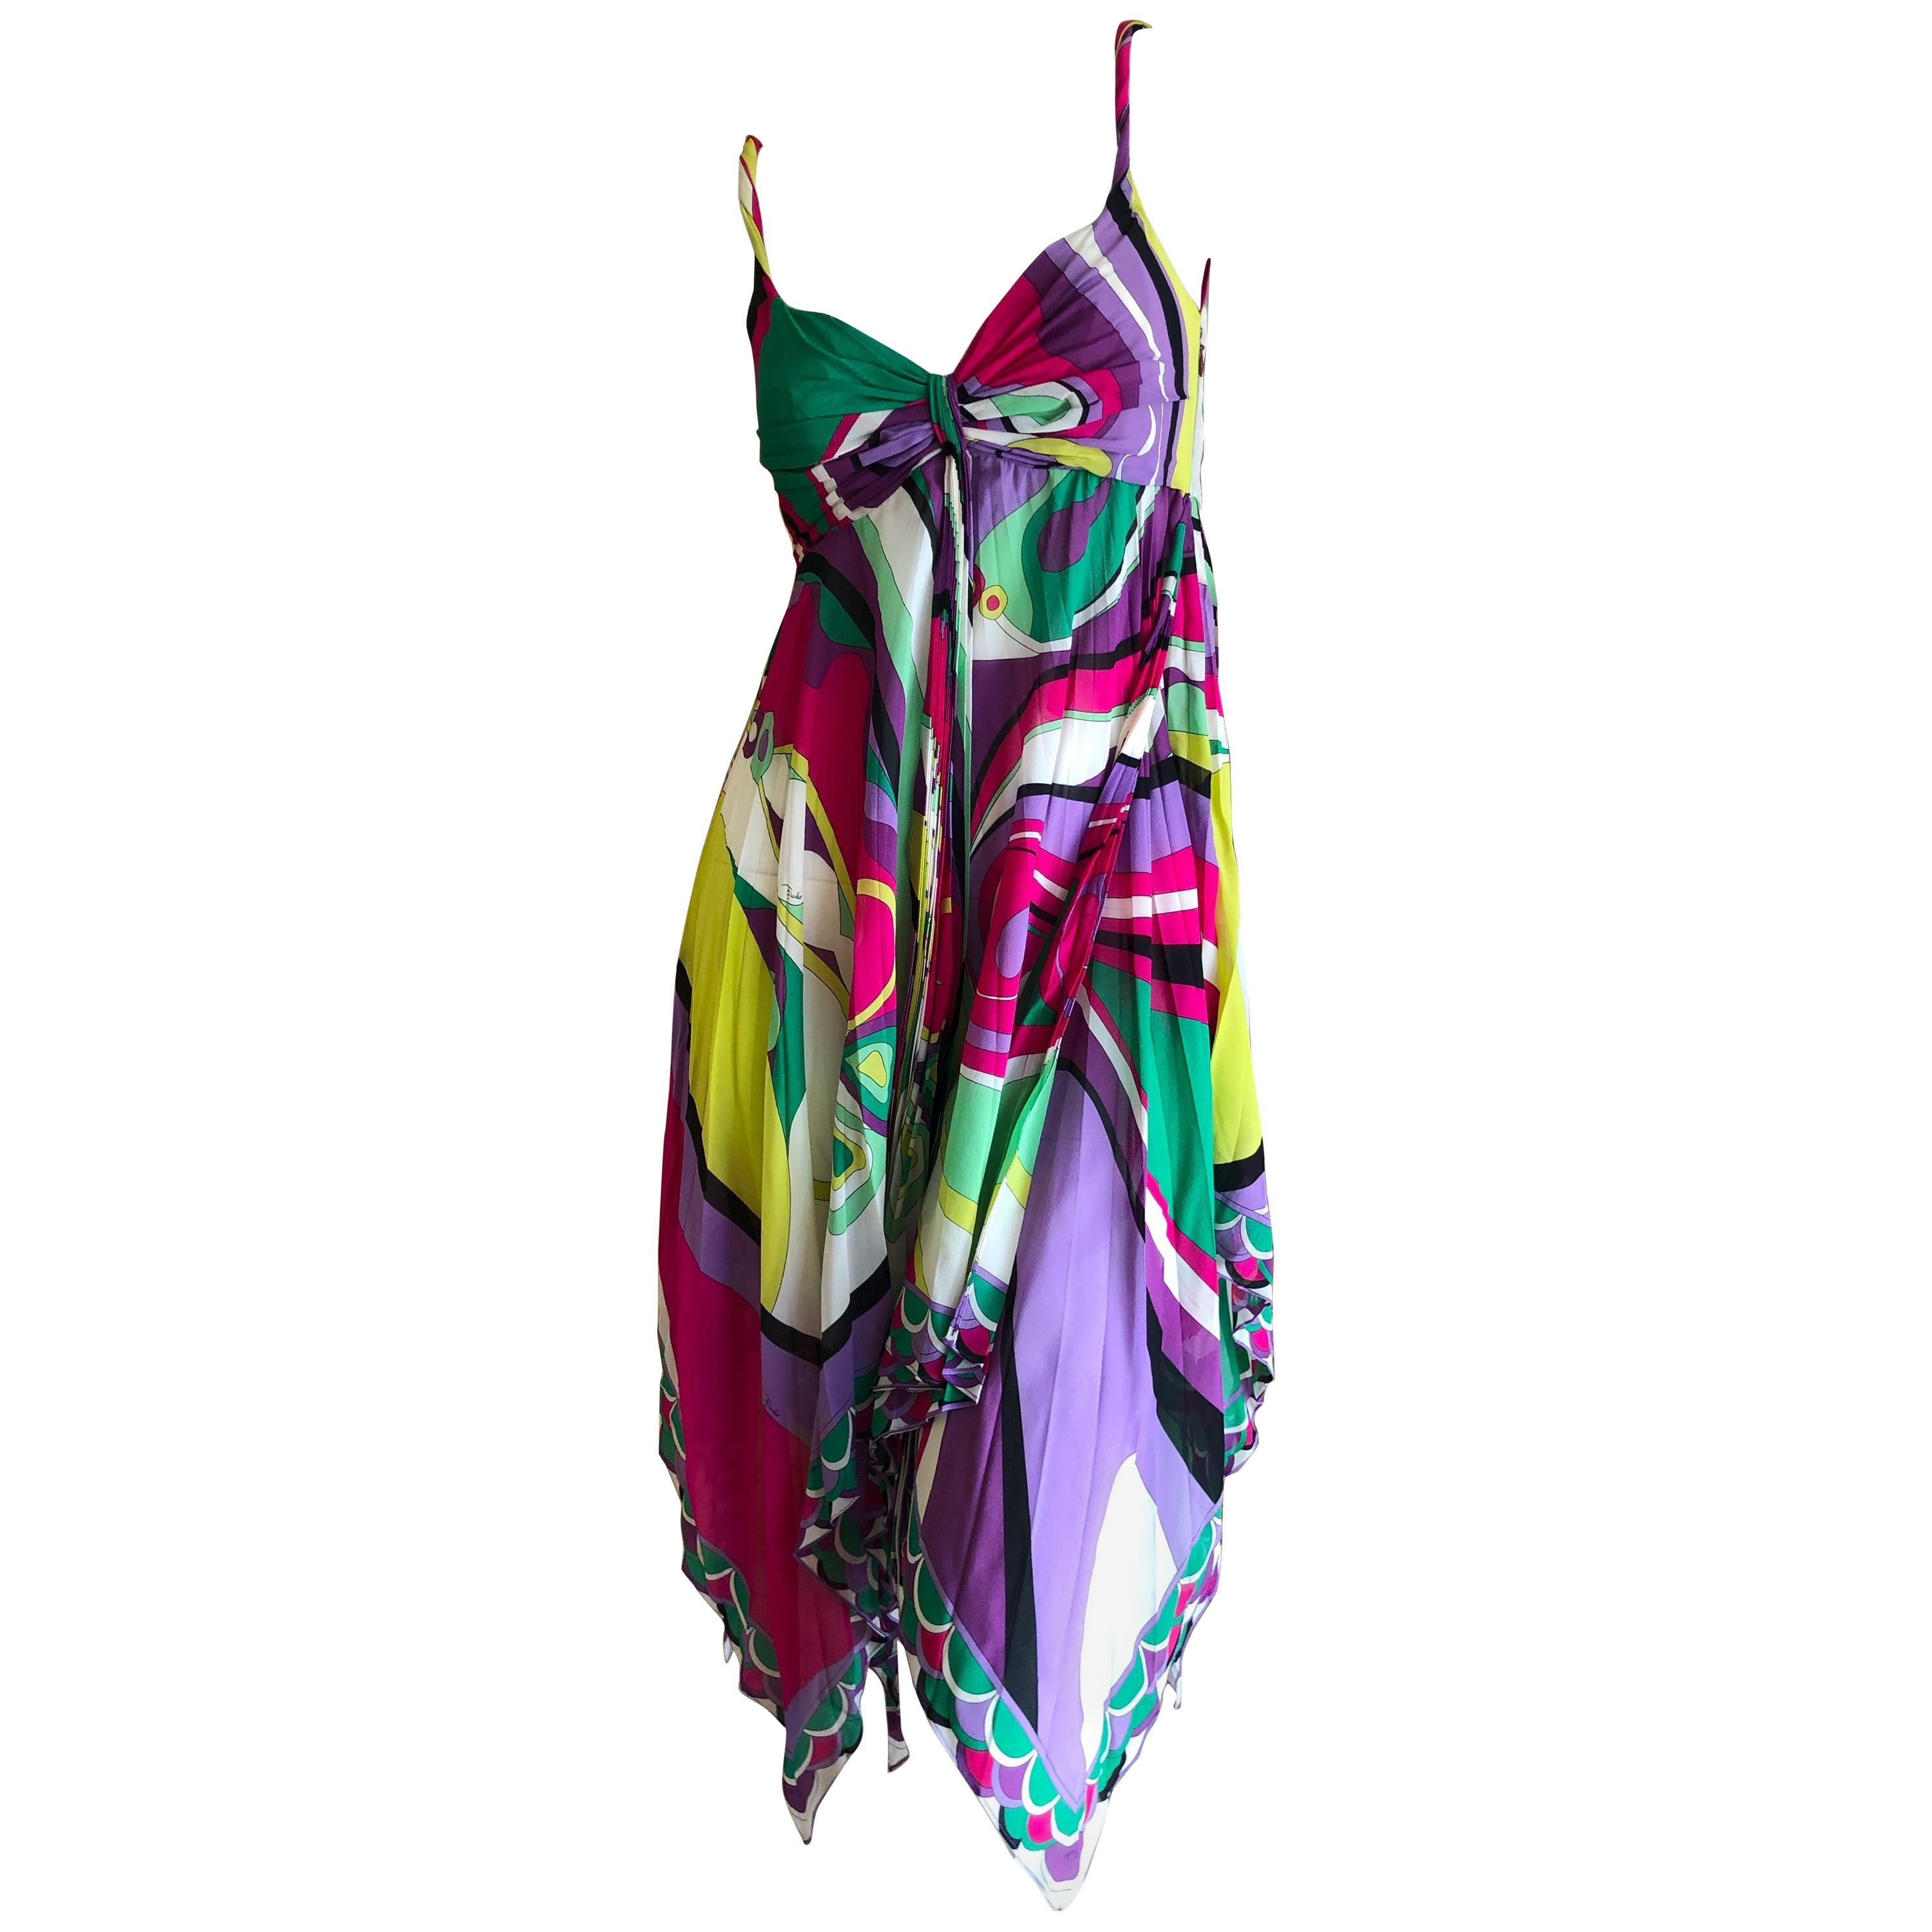 942c90201ed1 Emilio Pucci Colorful Pattern Silk Mini Dress with Handkerchief Hem For  Sale at 1stdibs